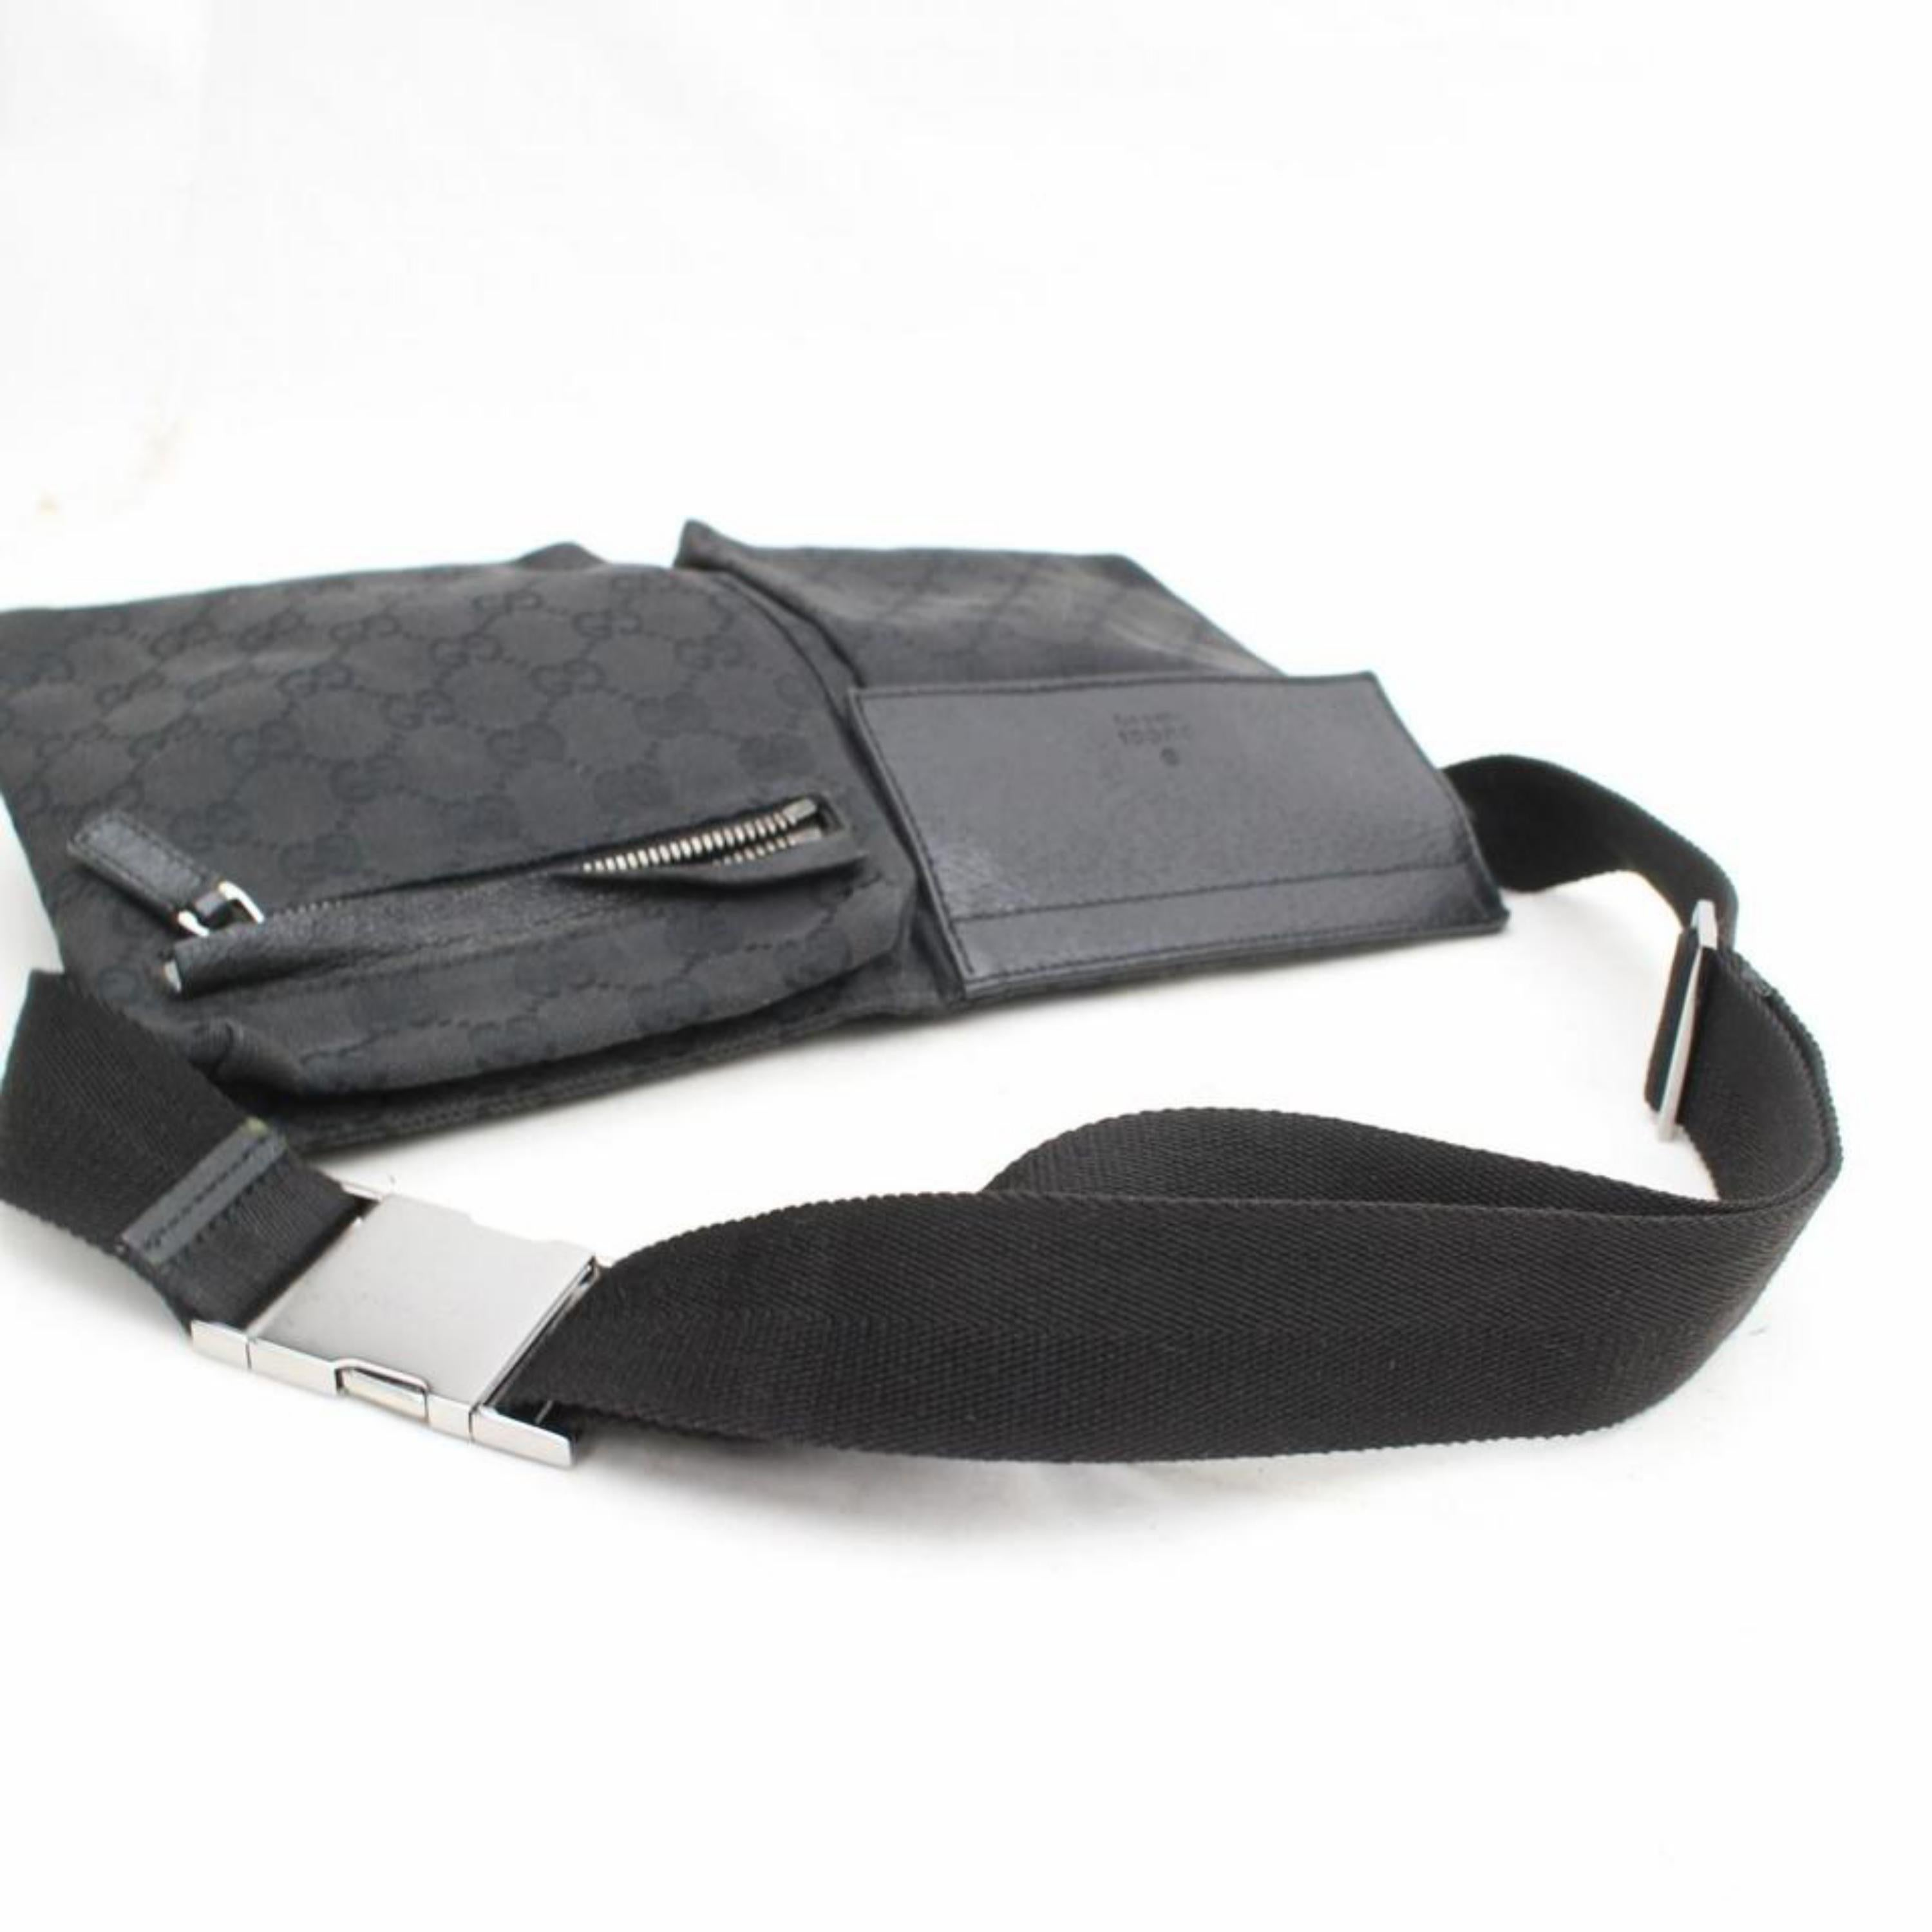 a6a836037d2b Gucci Monogram Gg Belt Fanny Pack Waist Pouch 869604 Black Canvas Cross  Body Bag For Sale at 1stdibs